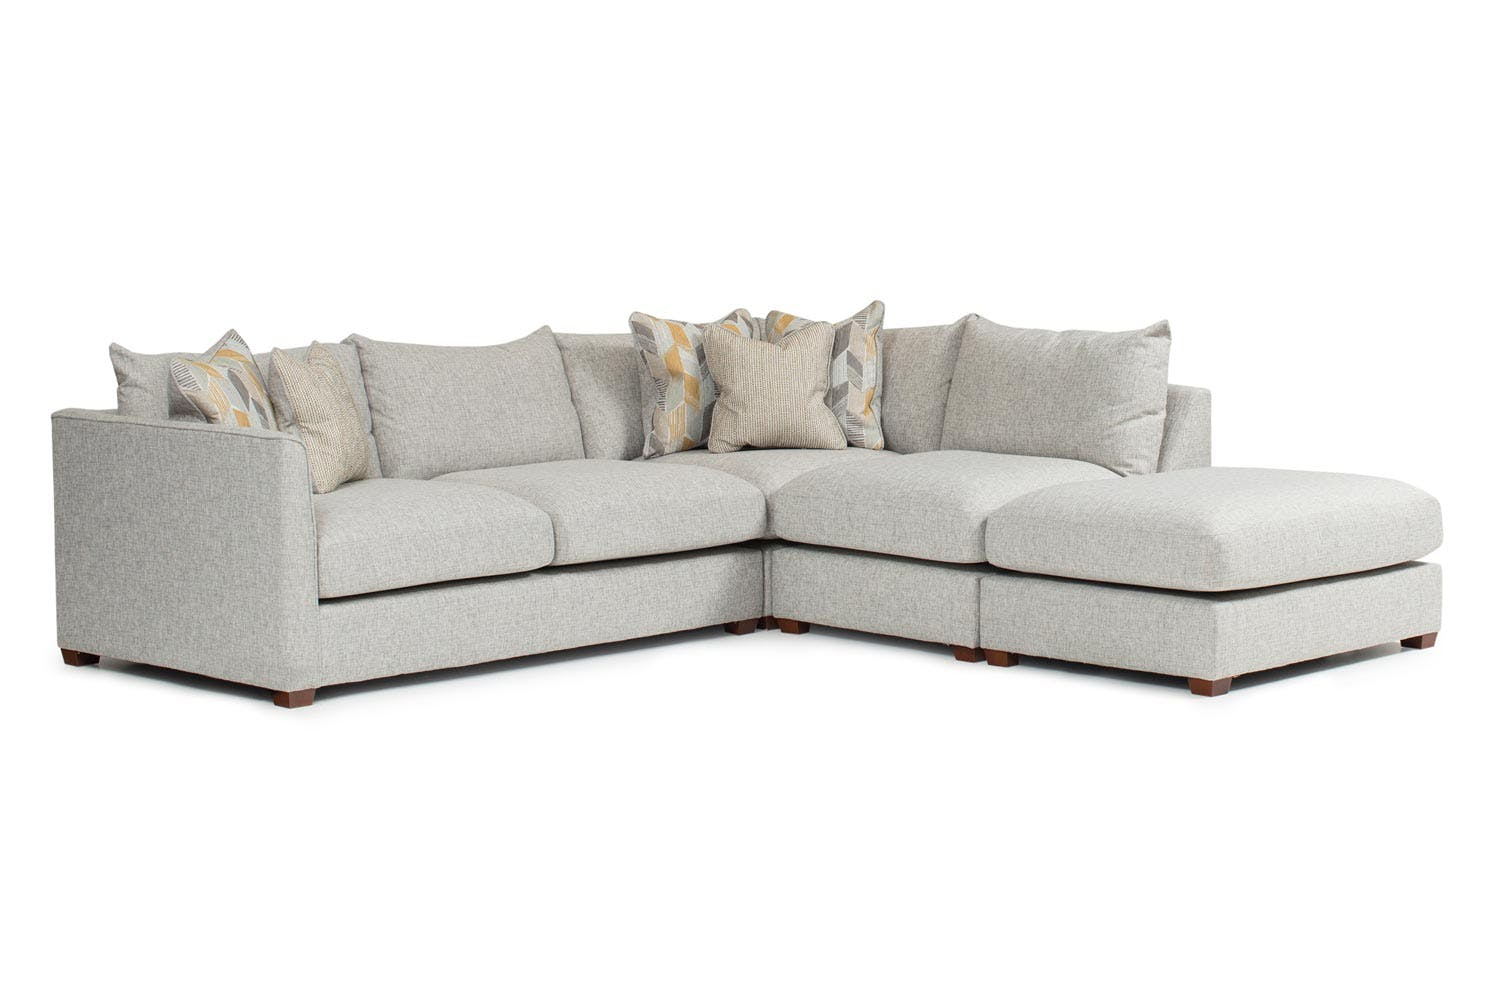 Faye corner sofa with chaise harvey norman ireland for Corner loveseats